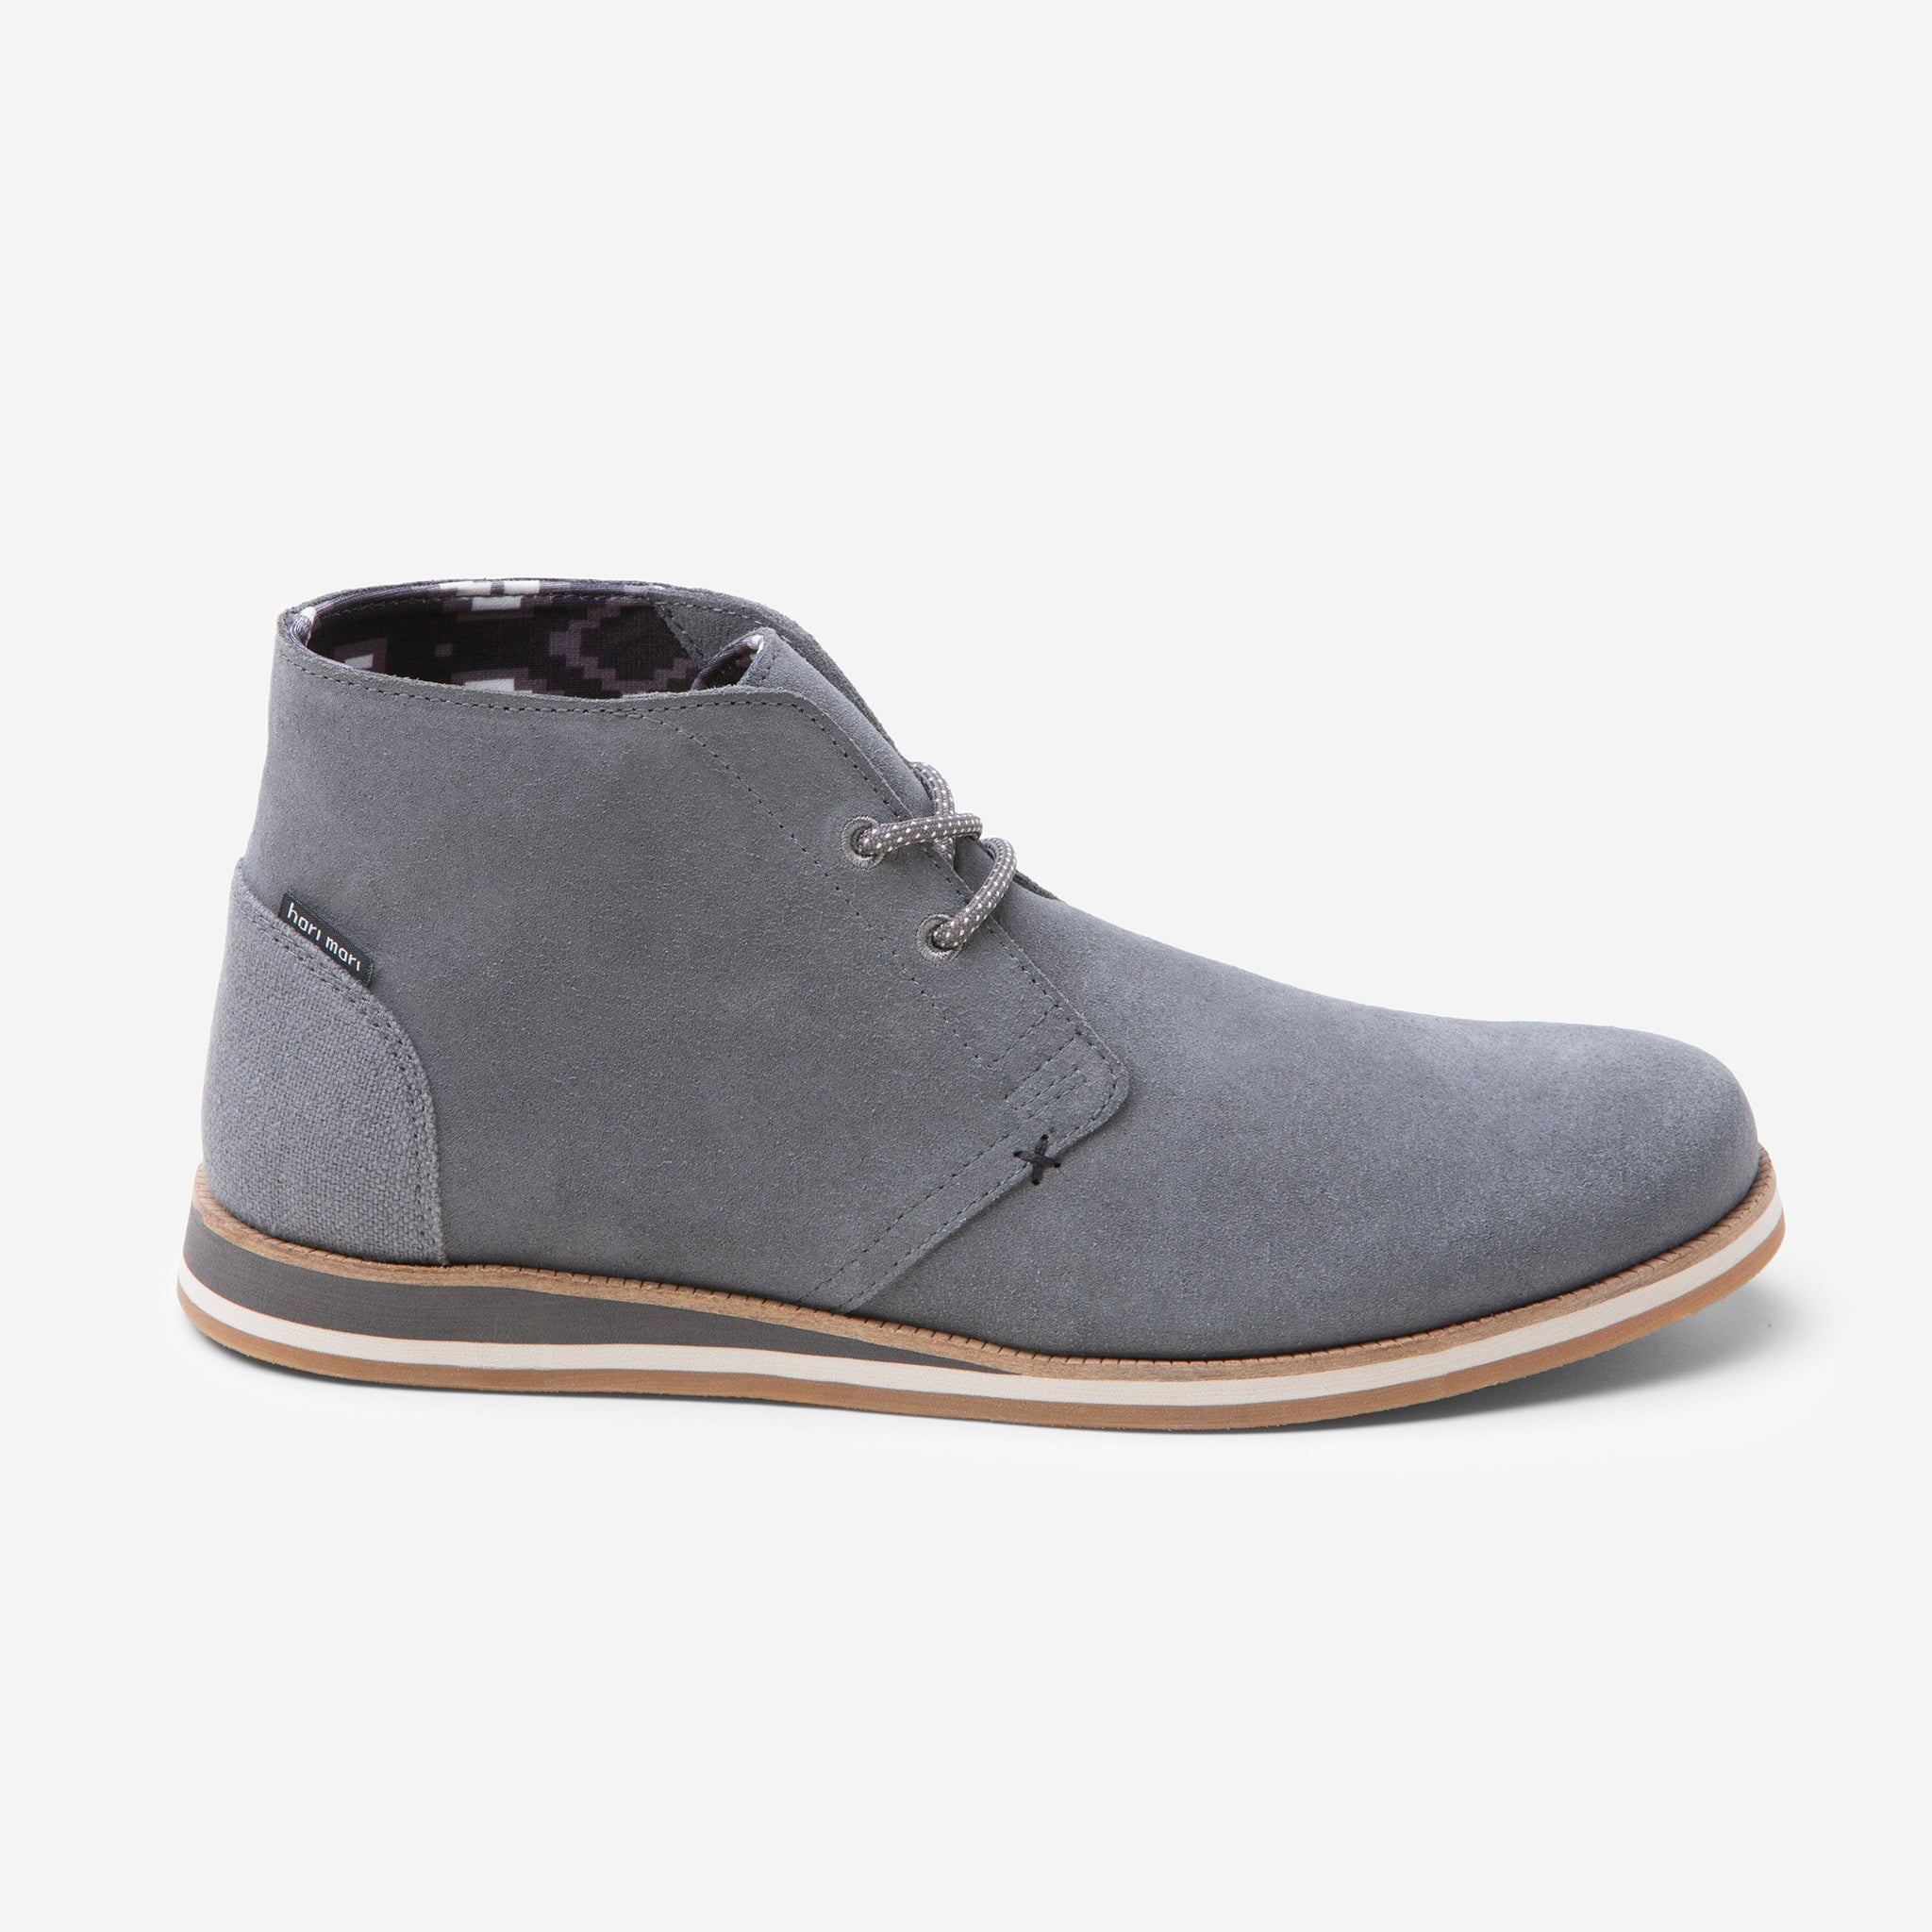 Adobe Desert Boot - Mens - Charcoal - Side View